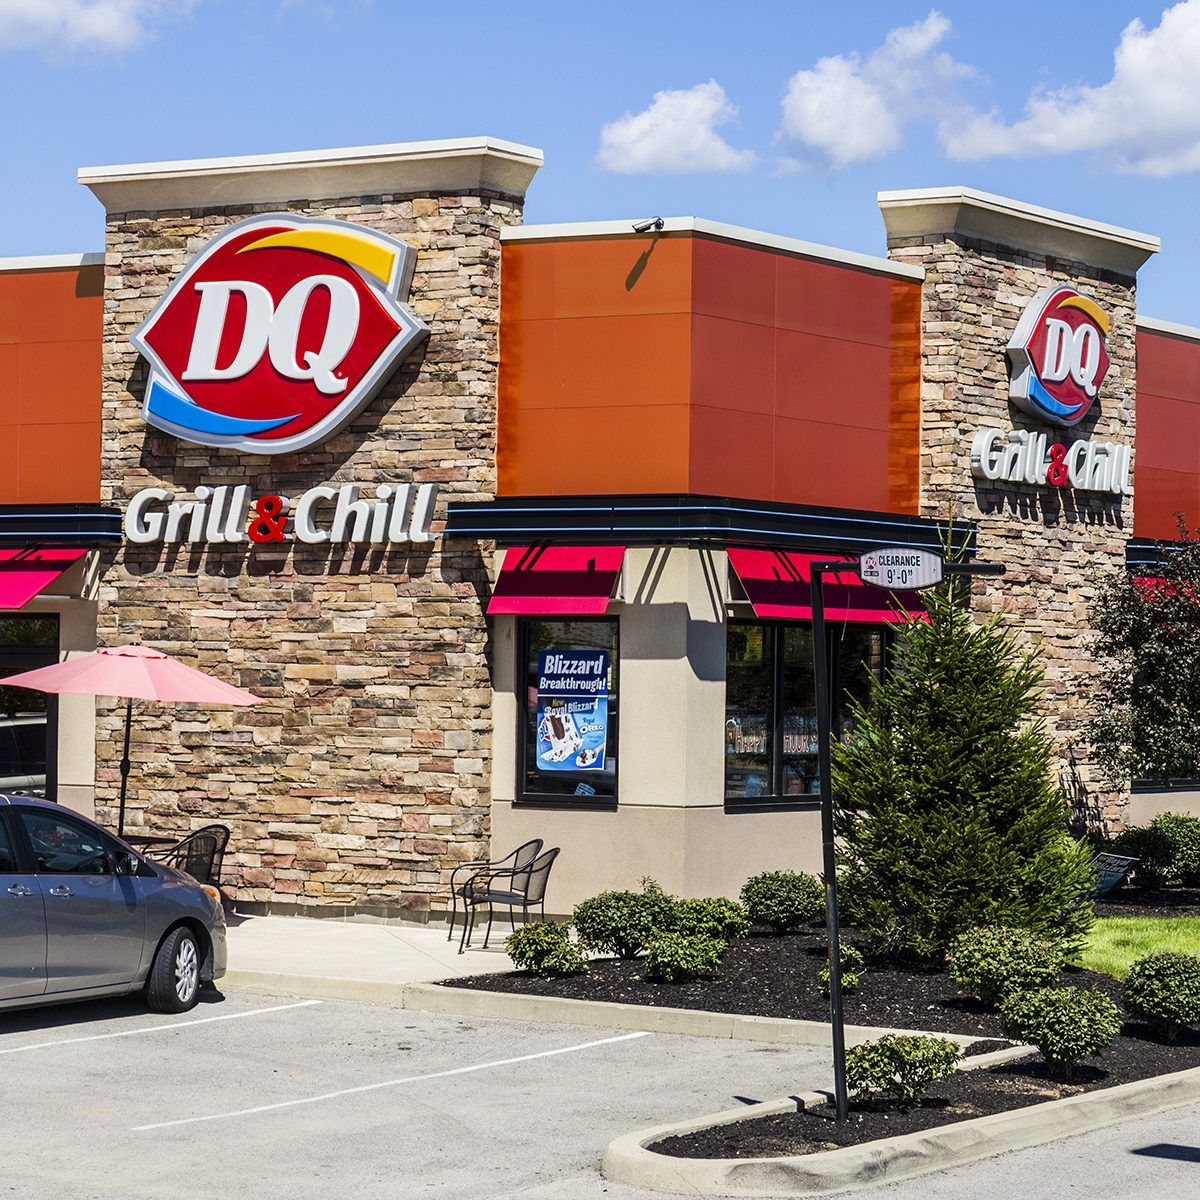 Dairy Queen Retail Fast Food Location. DQ is a Subsidiary of Berkshire Hathaway III